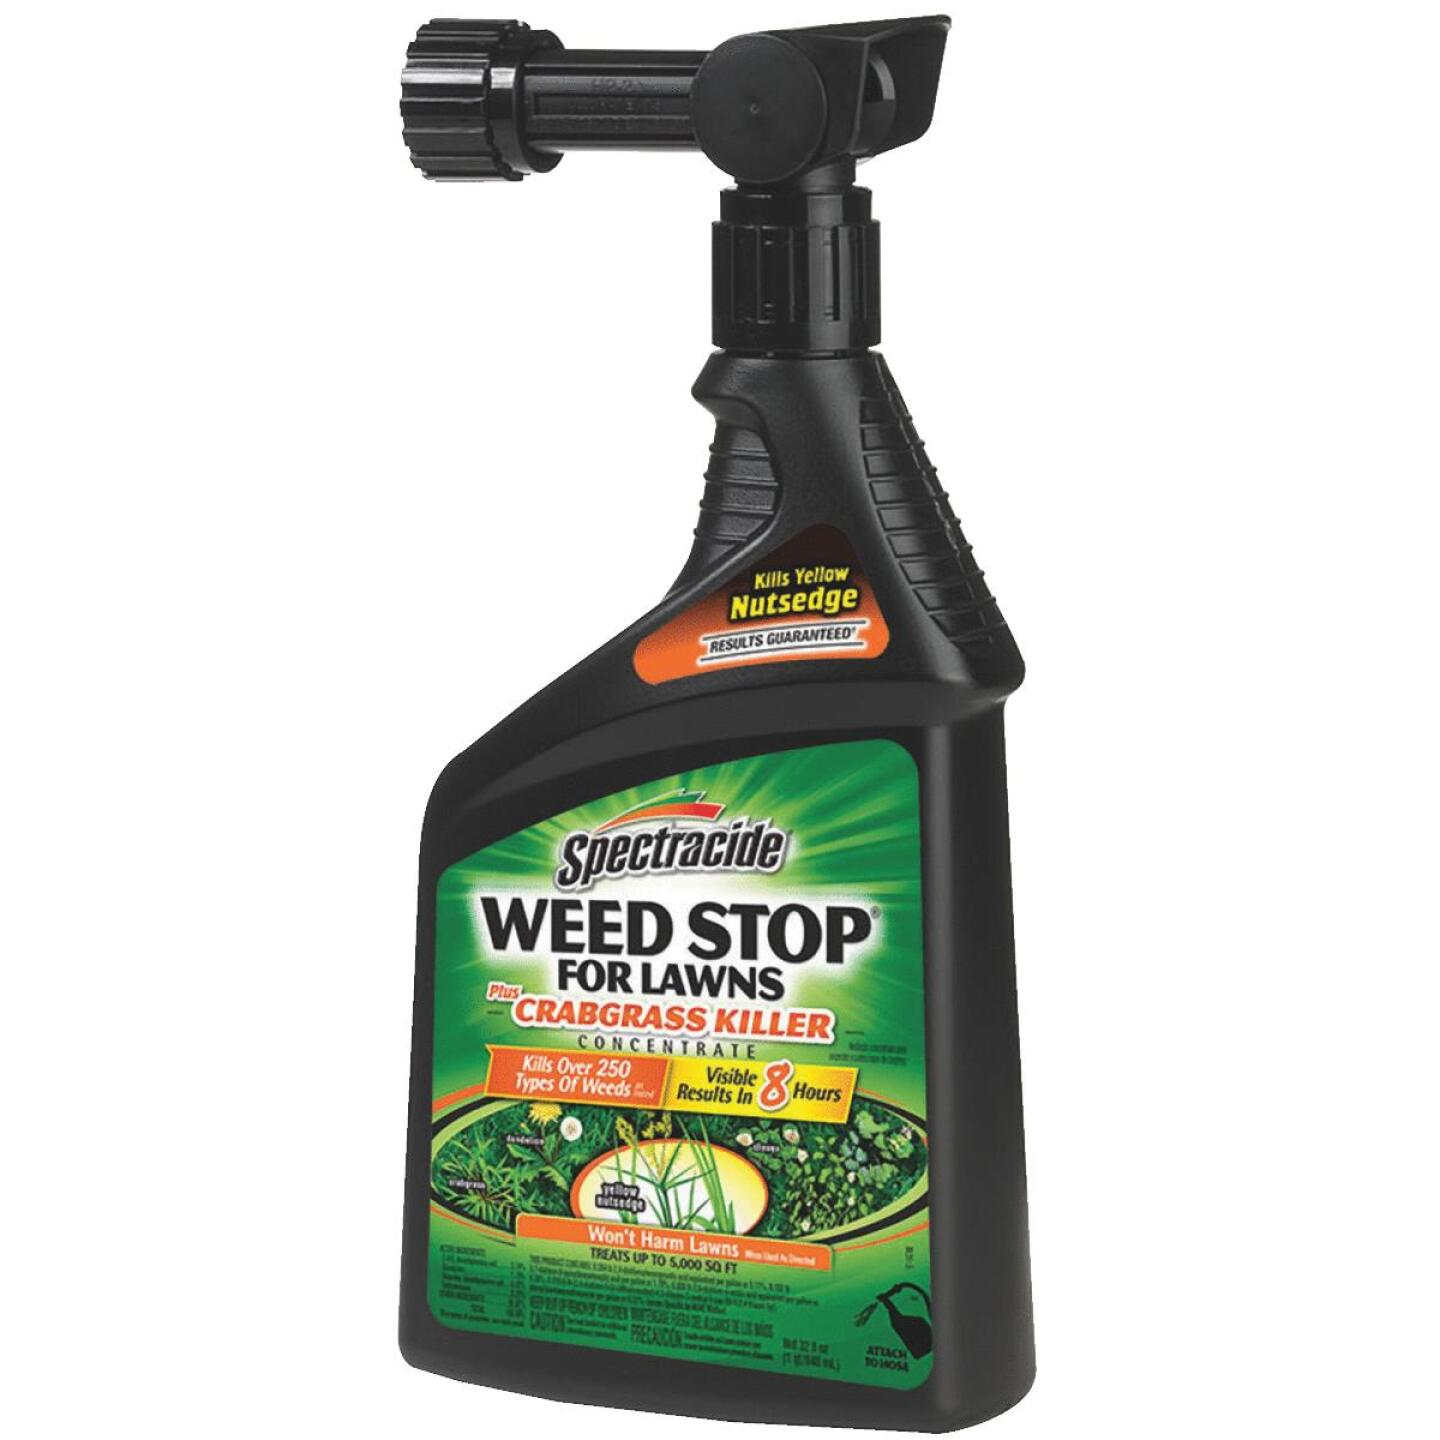 Spectracide Weed Stop 32 Oz. Ready To Spray Crabgrass & Weed Killer Image 1